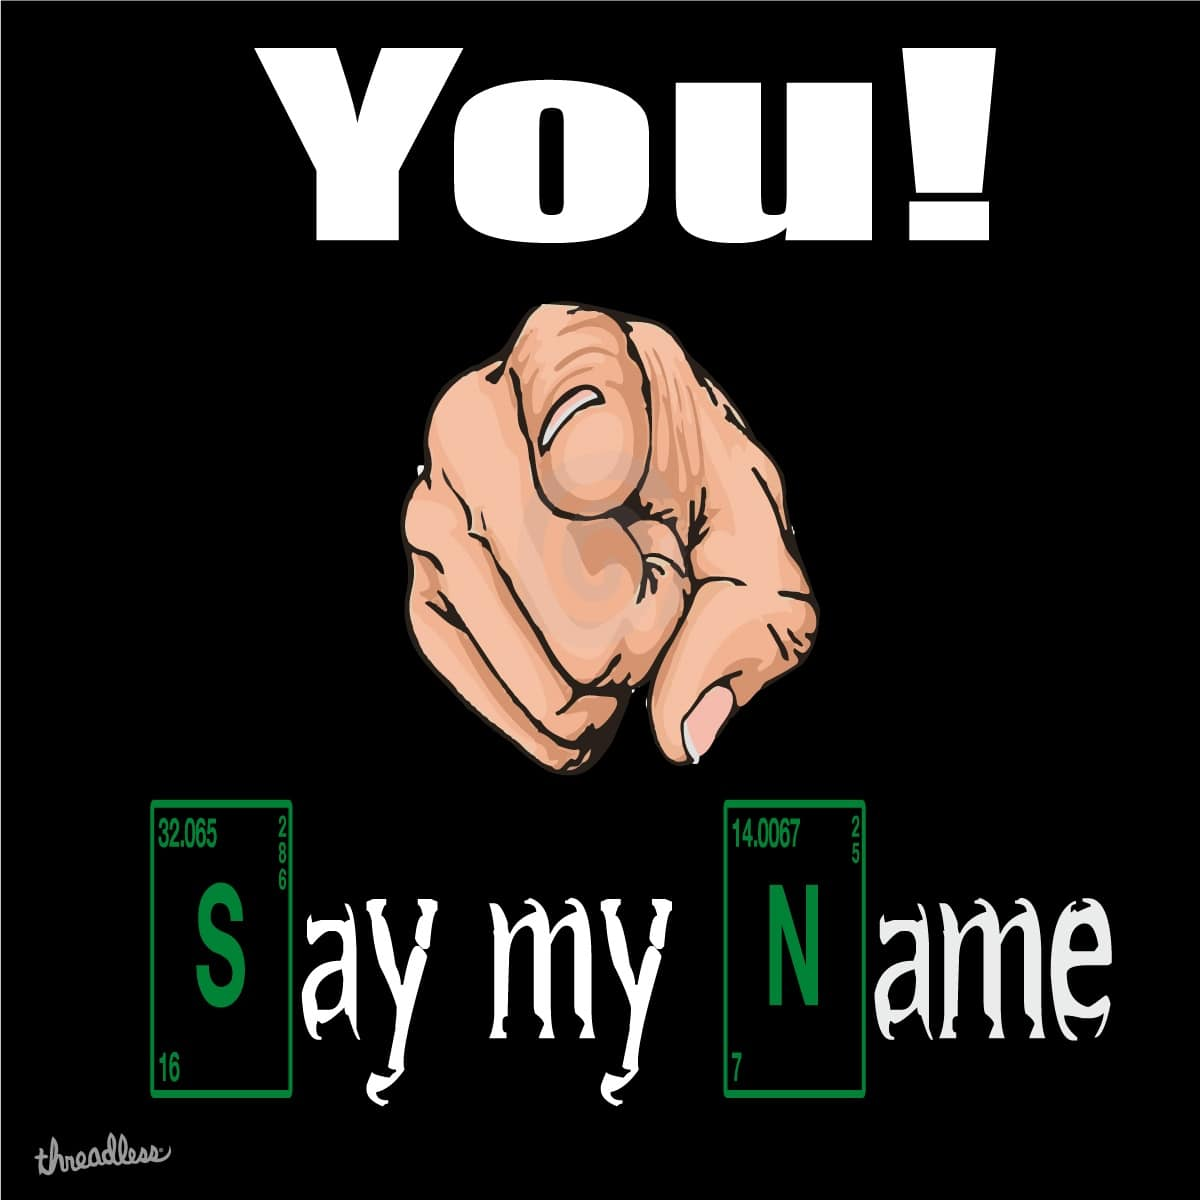 Say my Name ! by Peveralli on Threadless